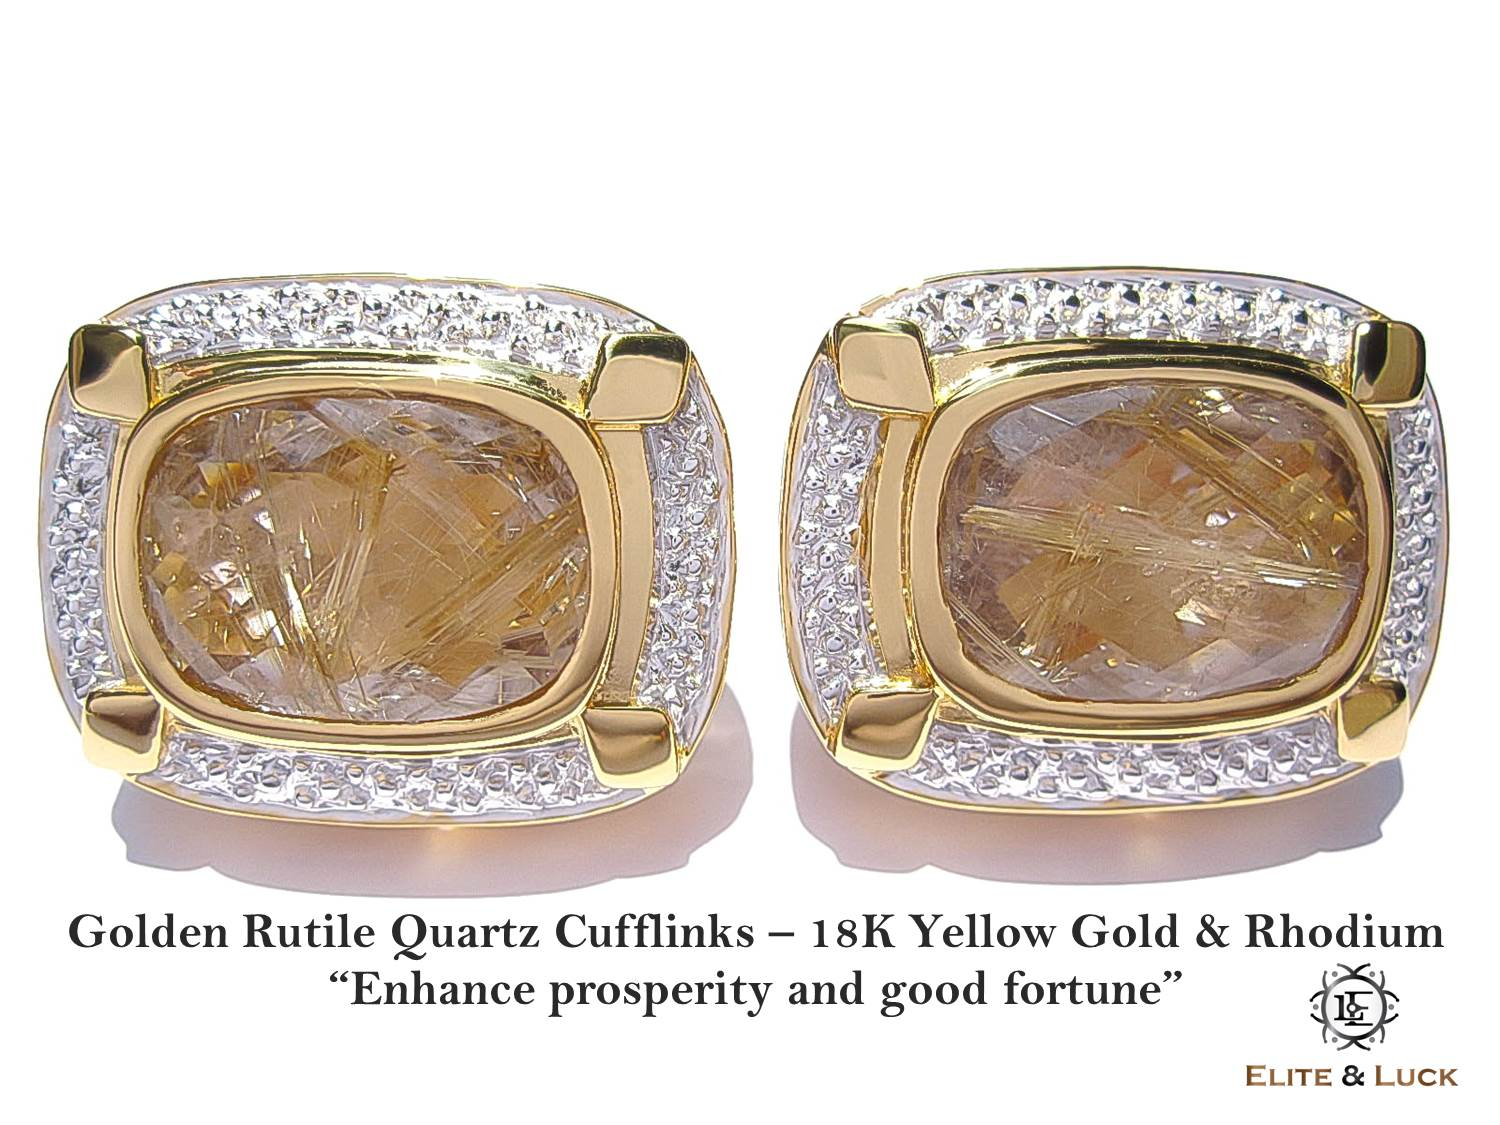 Golden Rutile Quartz Sterling Silver Cufflinks สี 18K Yellow Gold & Rhodium รุ่น Luxury